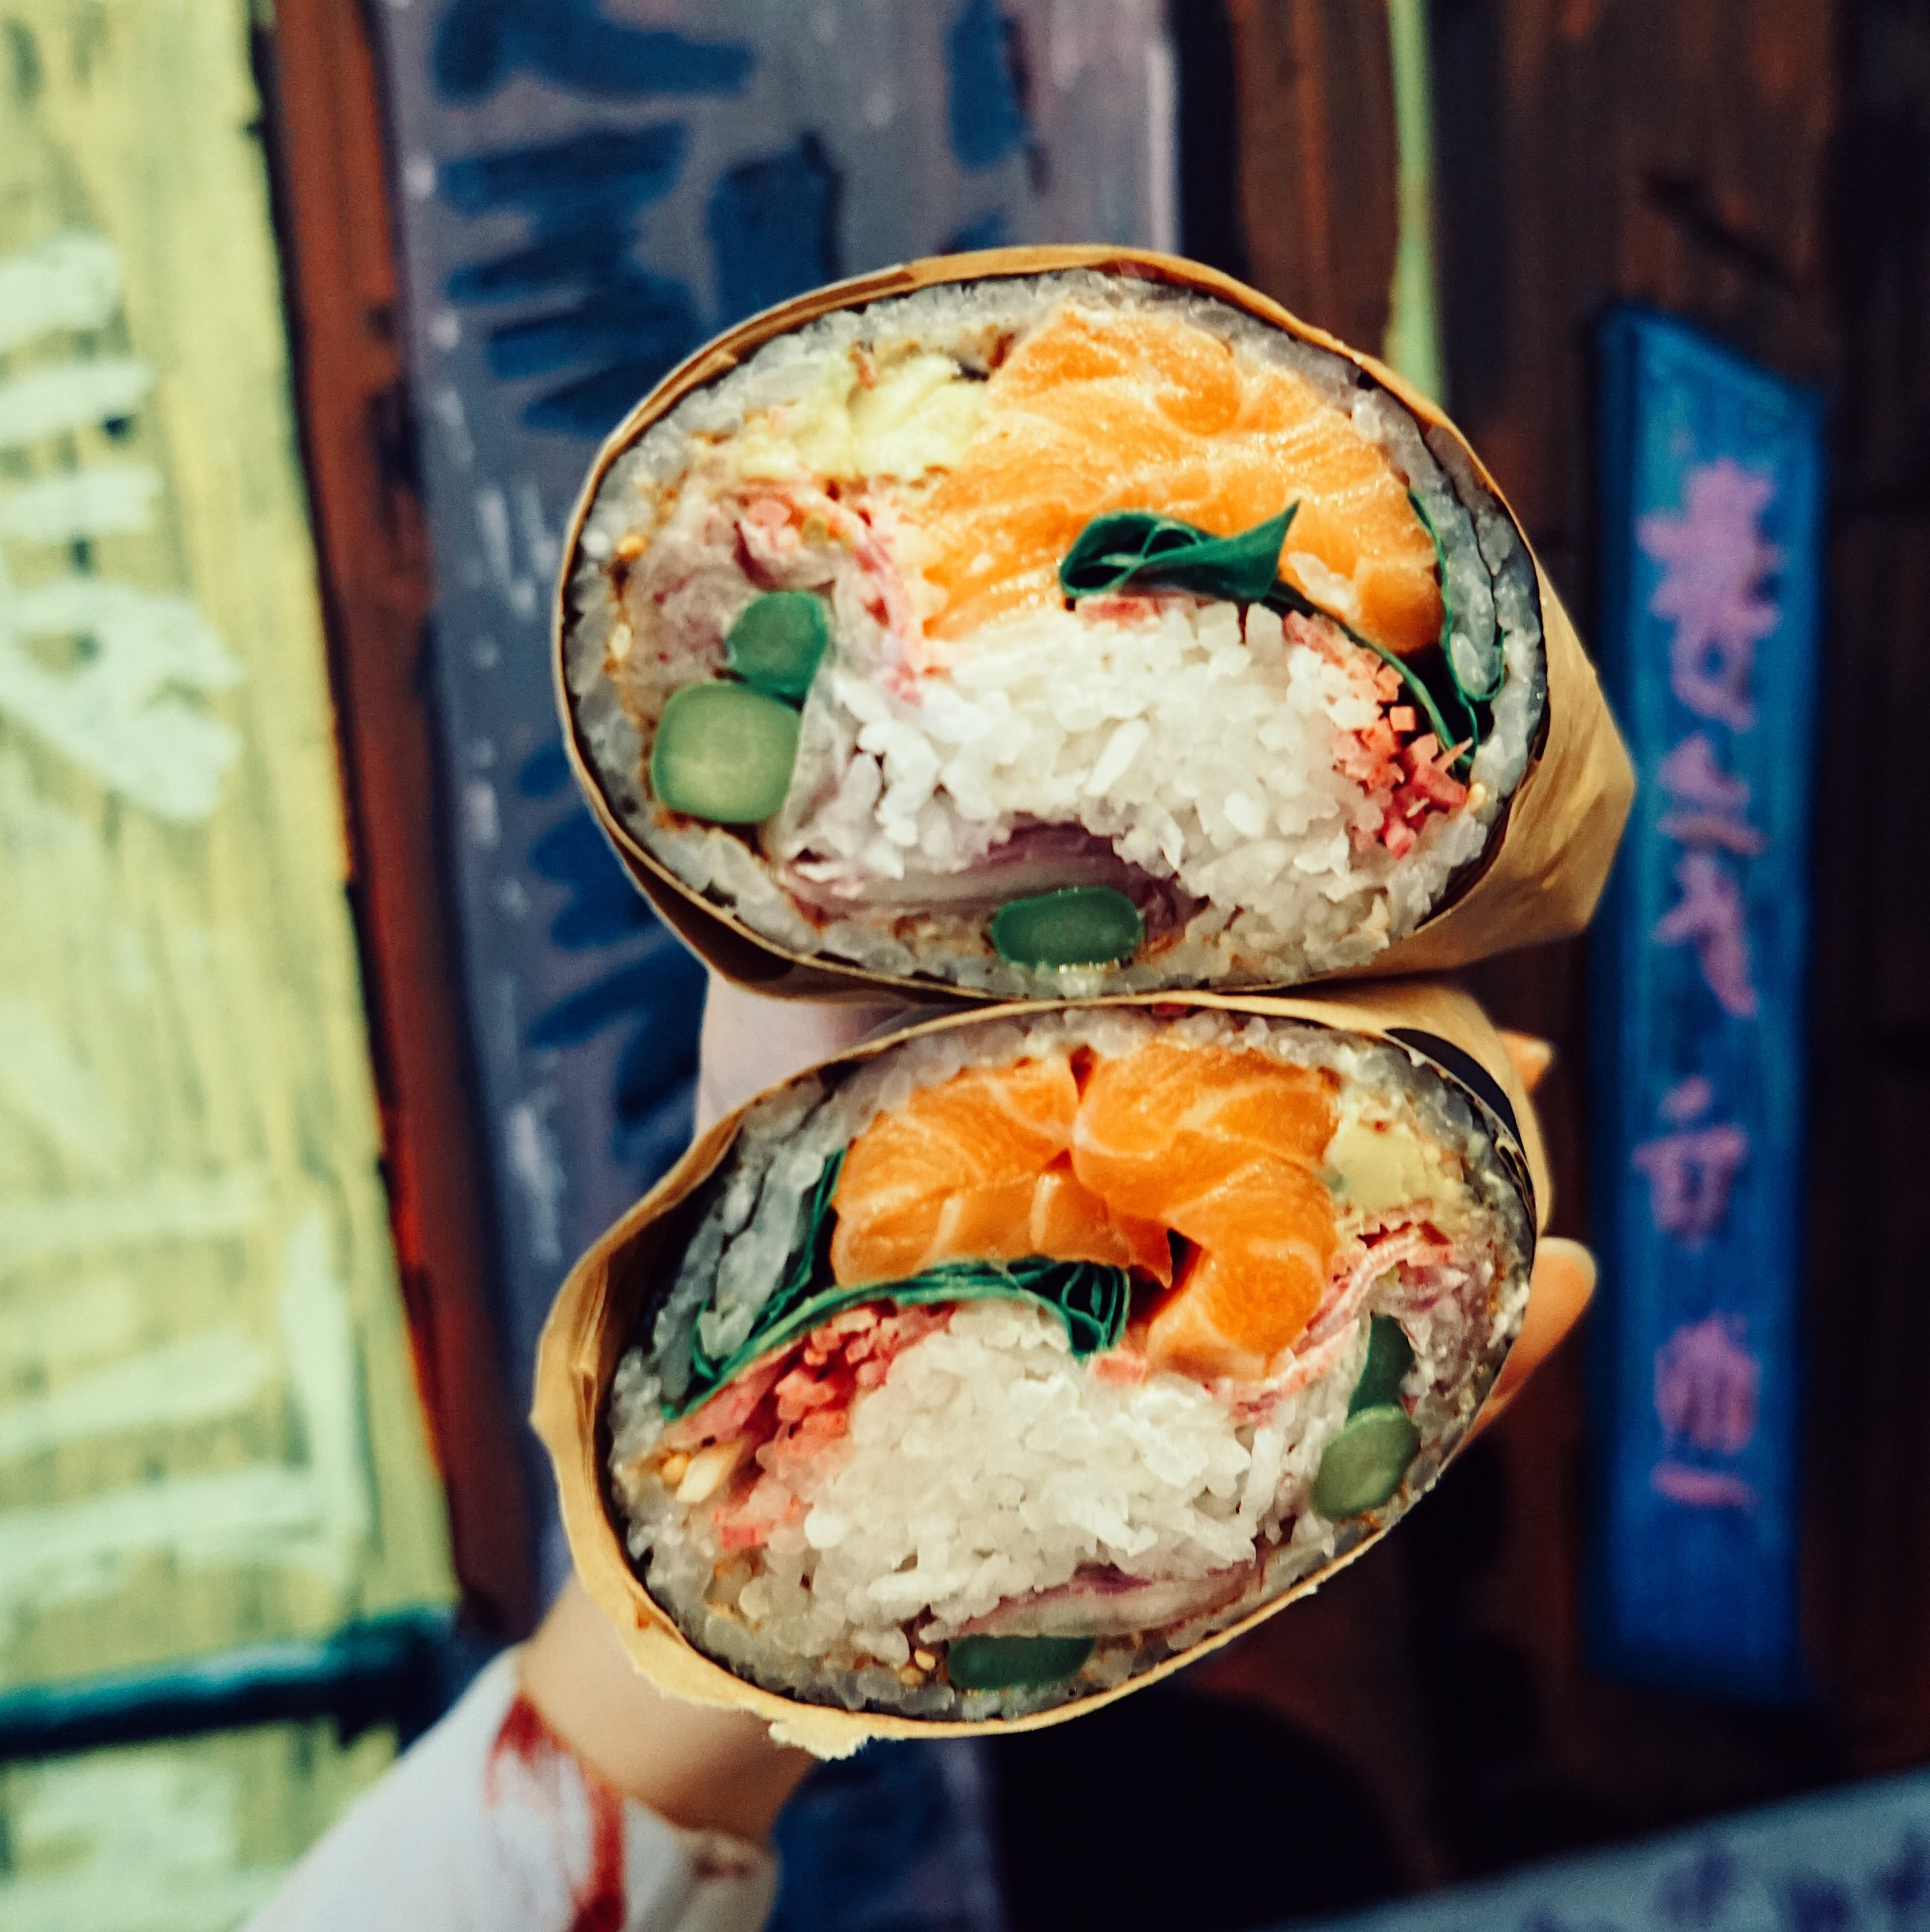 Sushi burritos at Buredo.